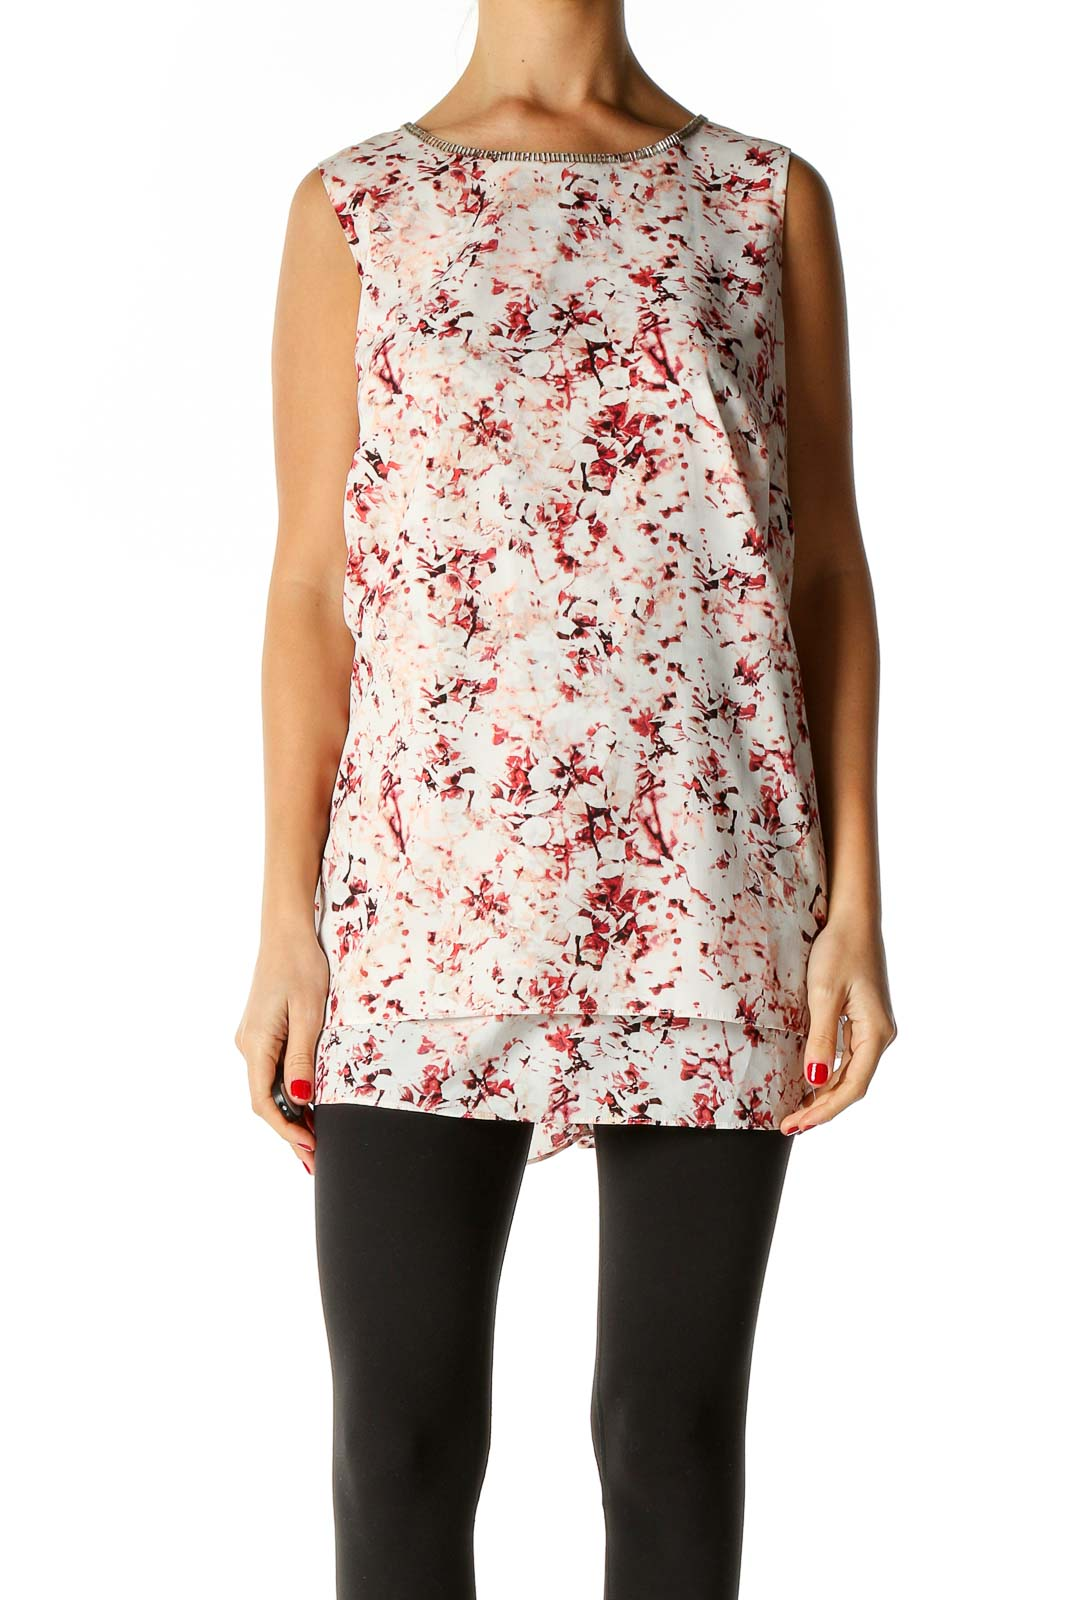 White Floral Print Blouse Front